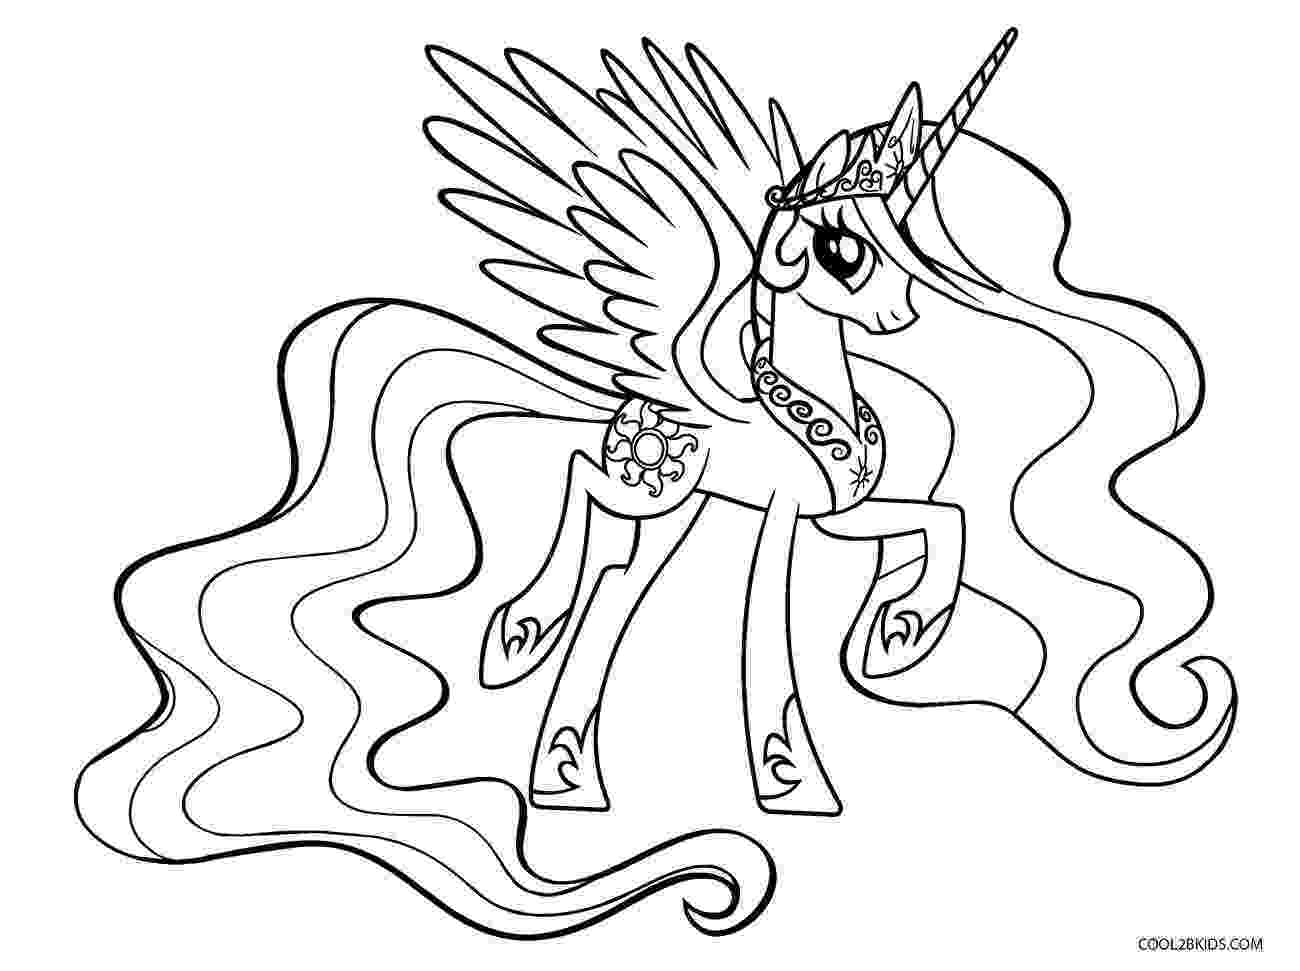 my little pony color sheets pony cartoon my little pony coloring page 003 unicorn sheets pony little color my